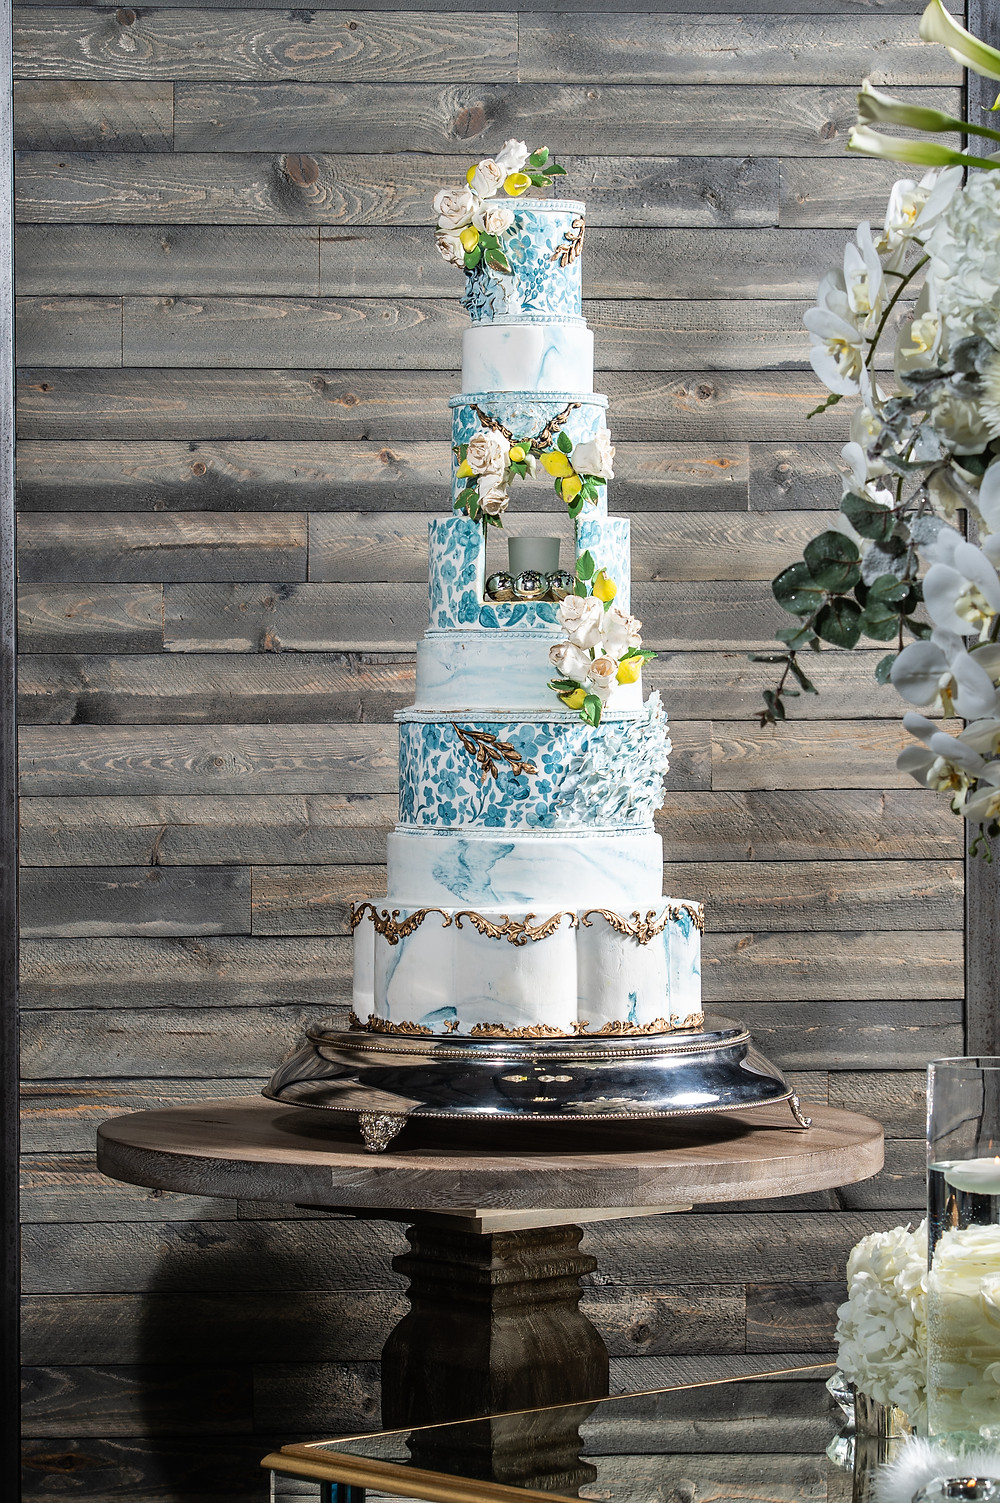 8-layer custom wedding cake with decorative flowers and hand-painted accents Bakers Cottage Cakes